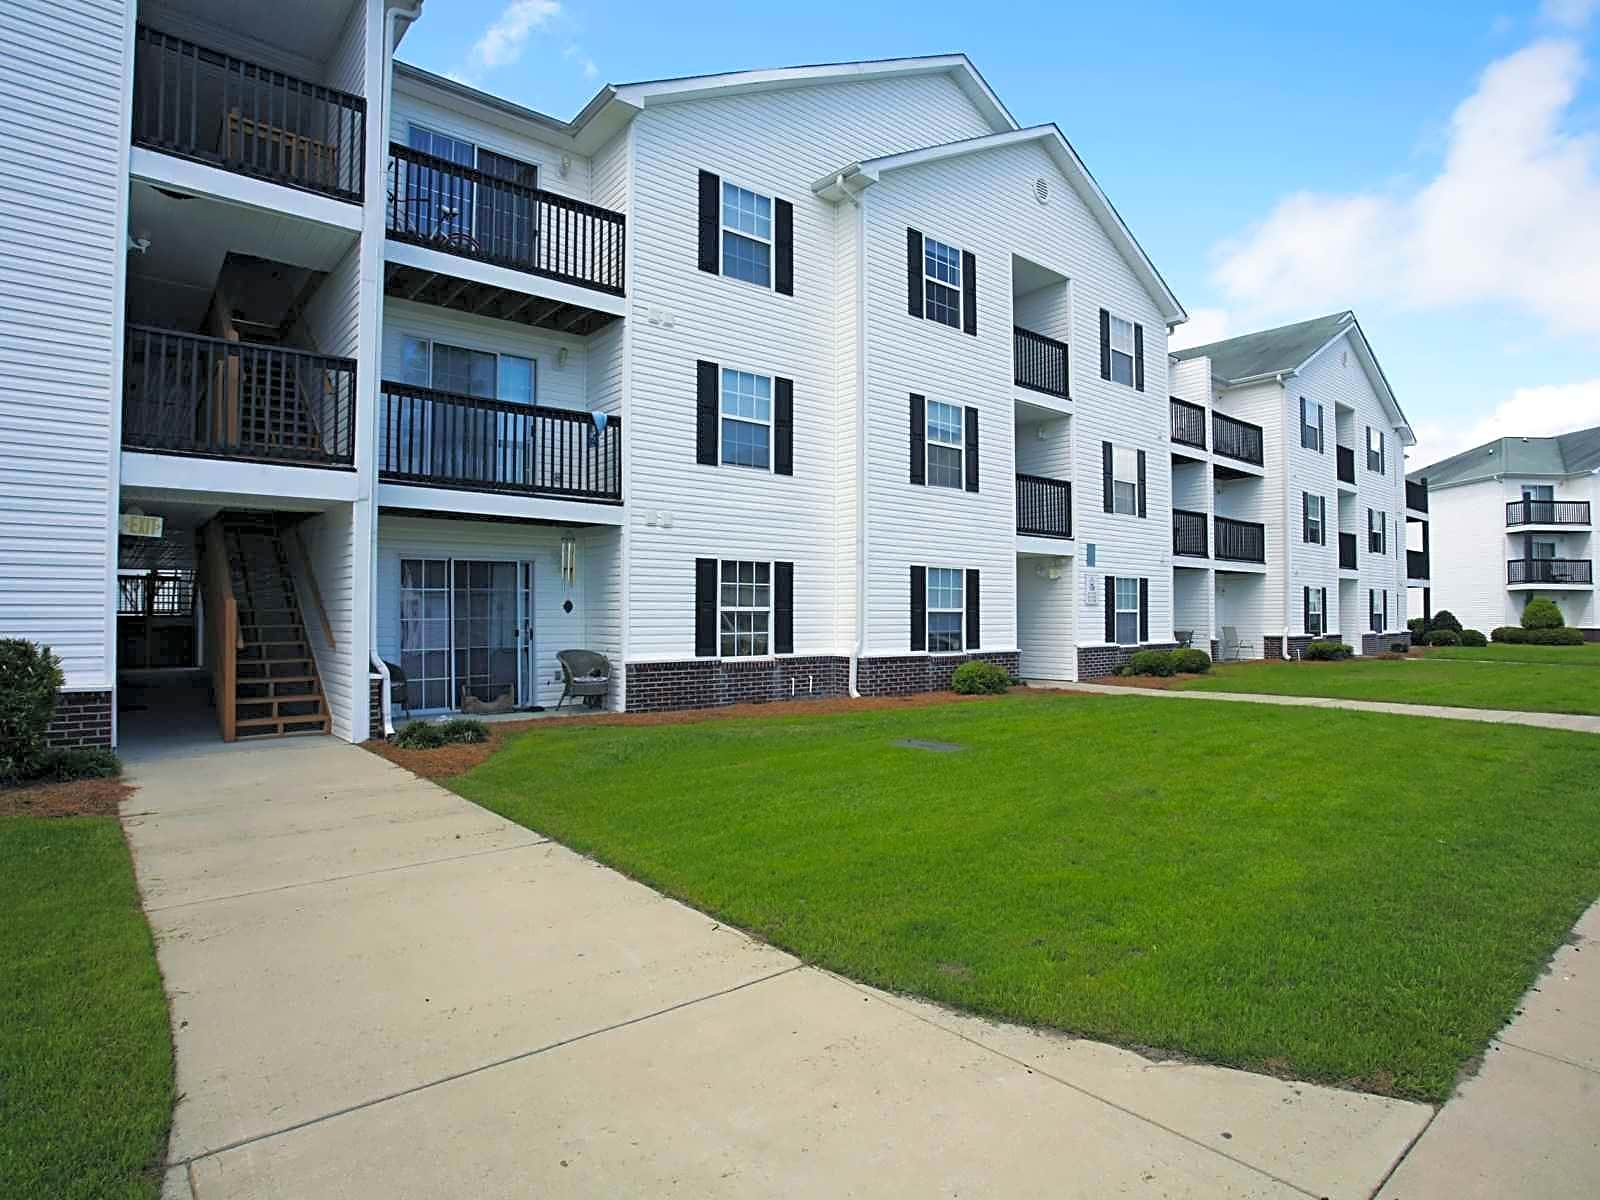 Photo: Myrtle Beach Apartment for Rent - $781.00 / month; 2 Bd & 1 Ba